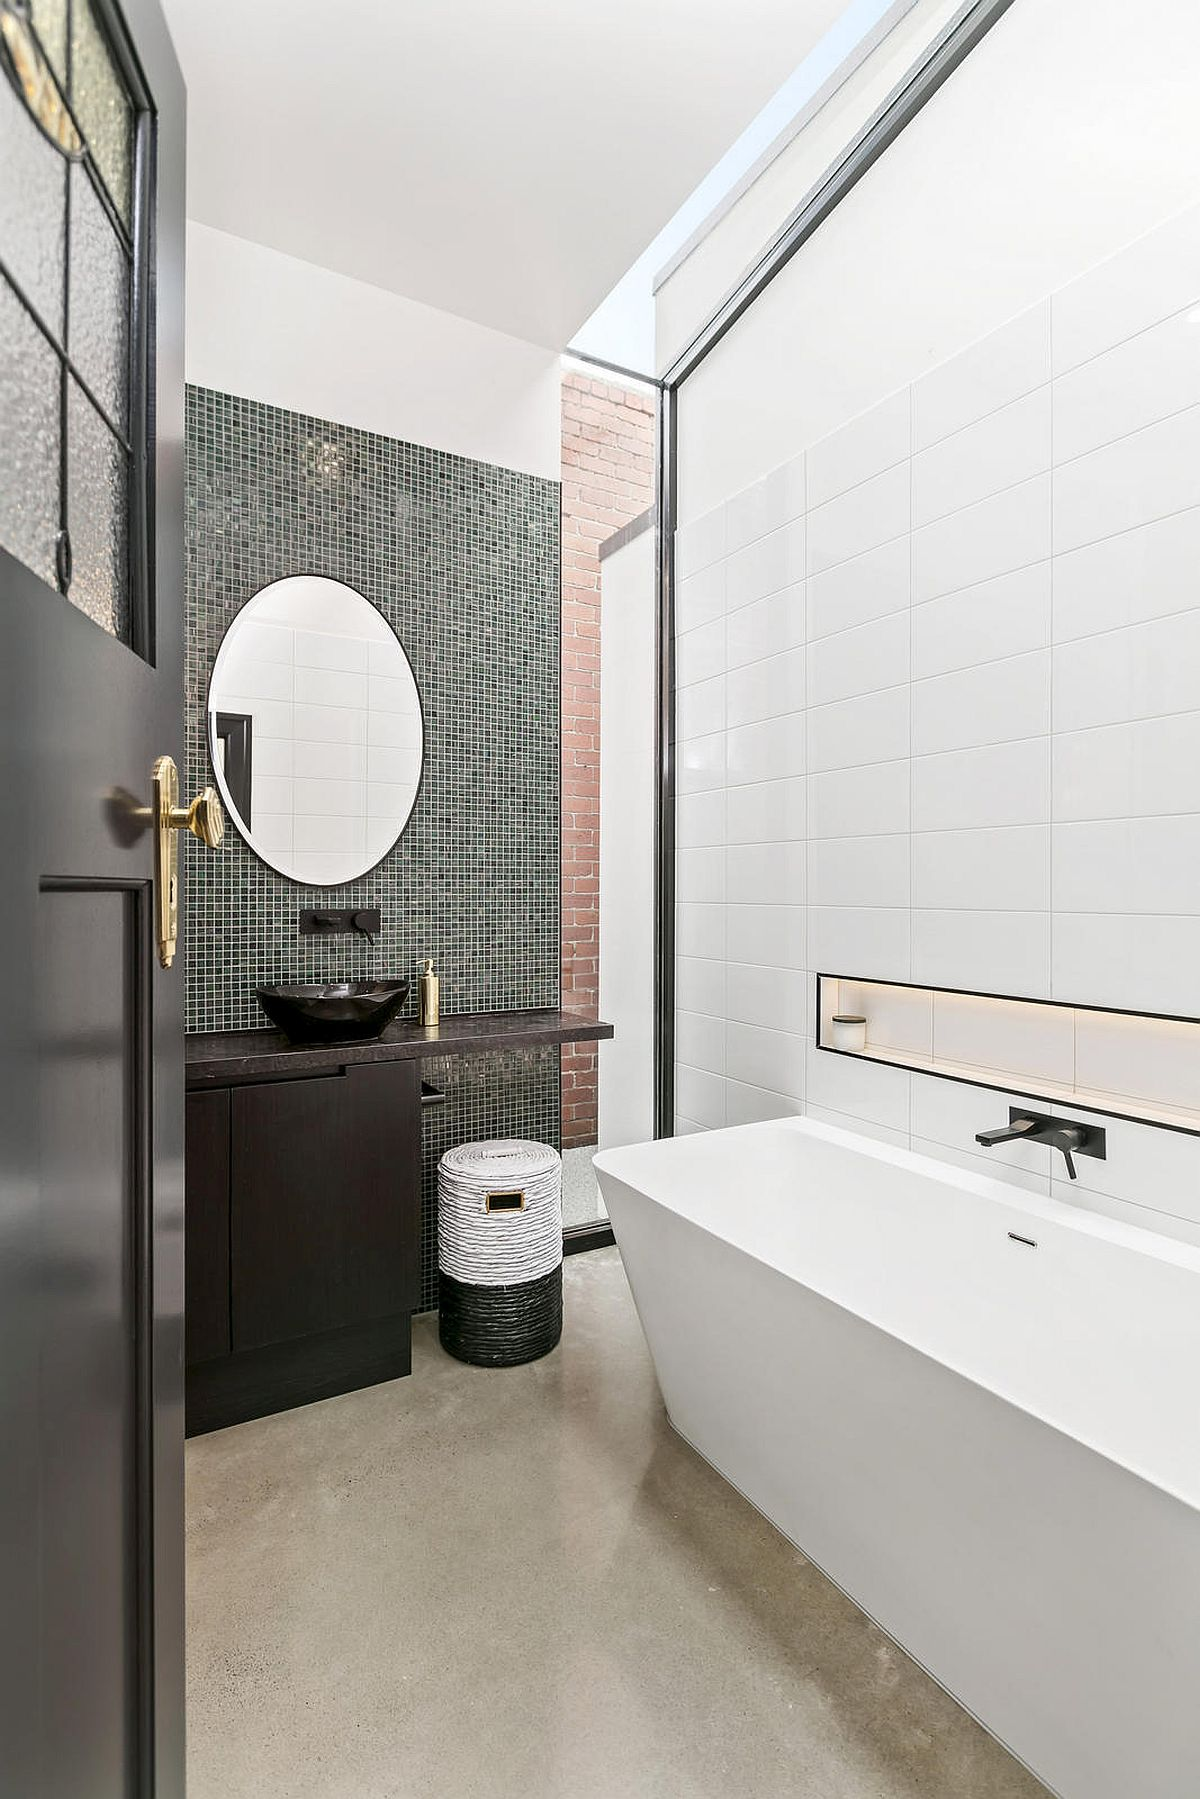 Contemporary-bathroom-in-white-with-a-dark-accent-wall-and-a-dash-of-red